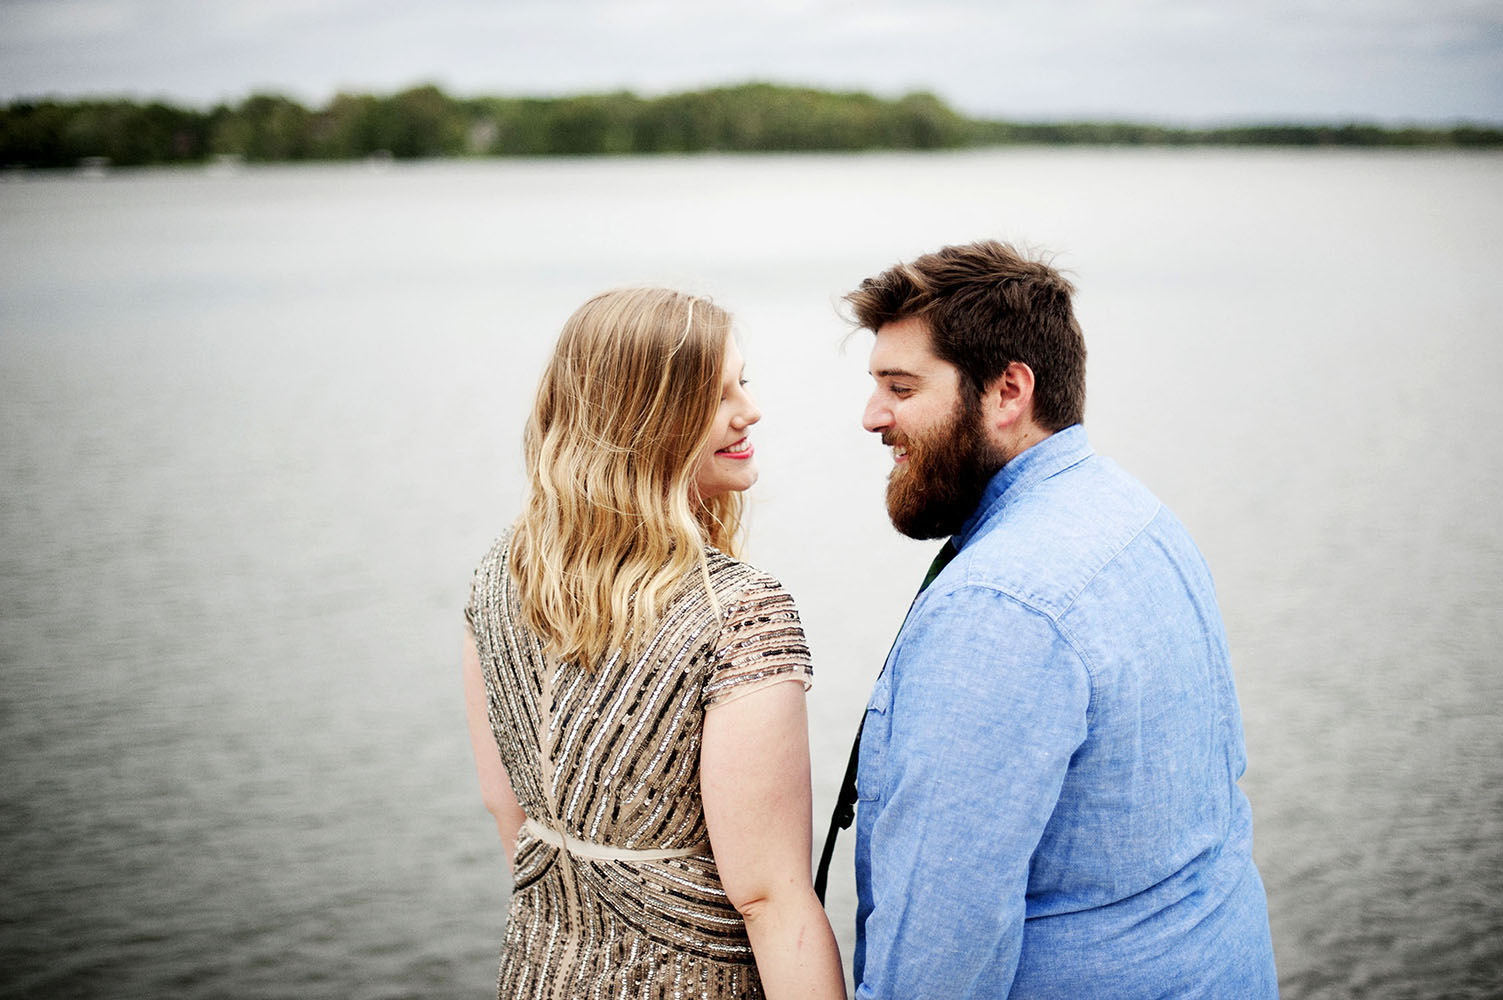 girl in sequin dress and guy in blue shirt by the water